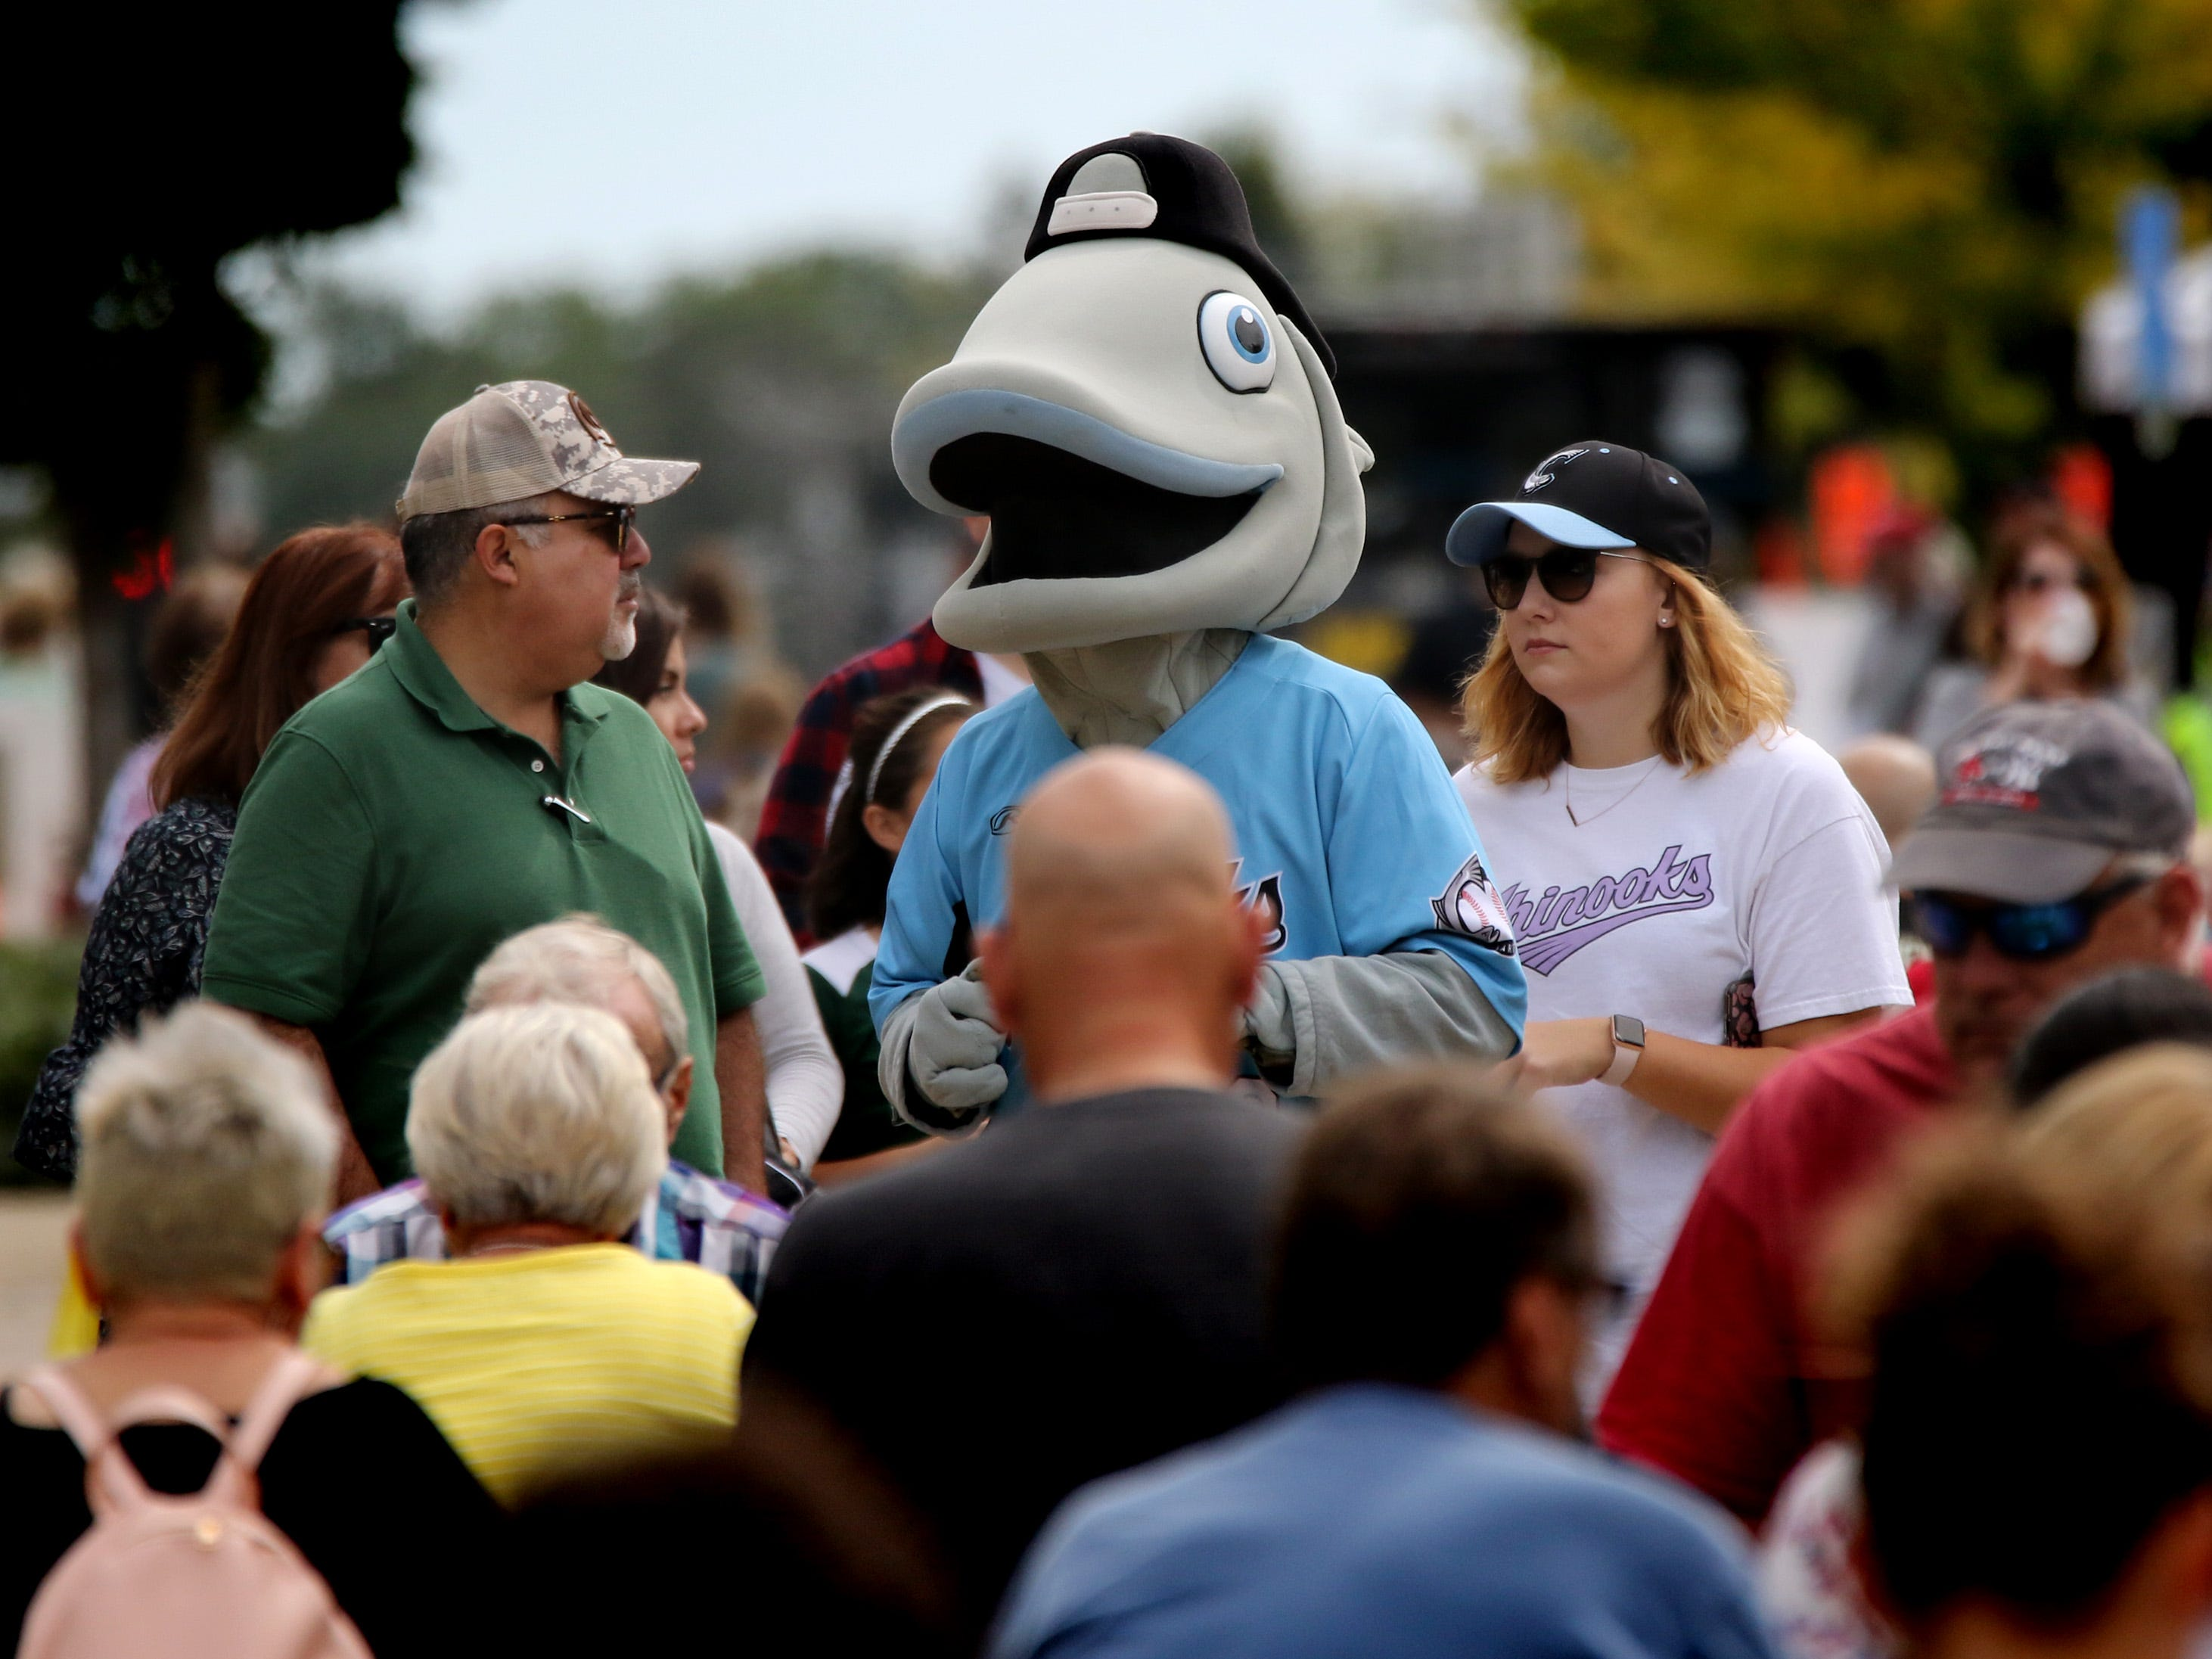 The mascot of the Lakeshore Chinooks baseball team of the Northwoods League wanders the crowd during the sixth annual Taste of Mequon in the vicinity of City Hall and on Cedarburg Road on Sept. 8.